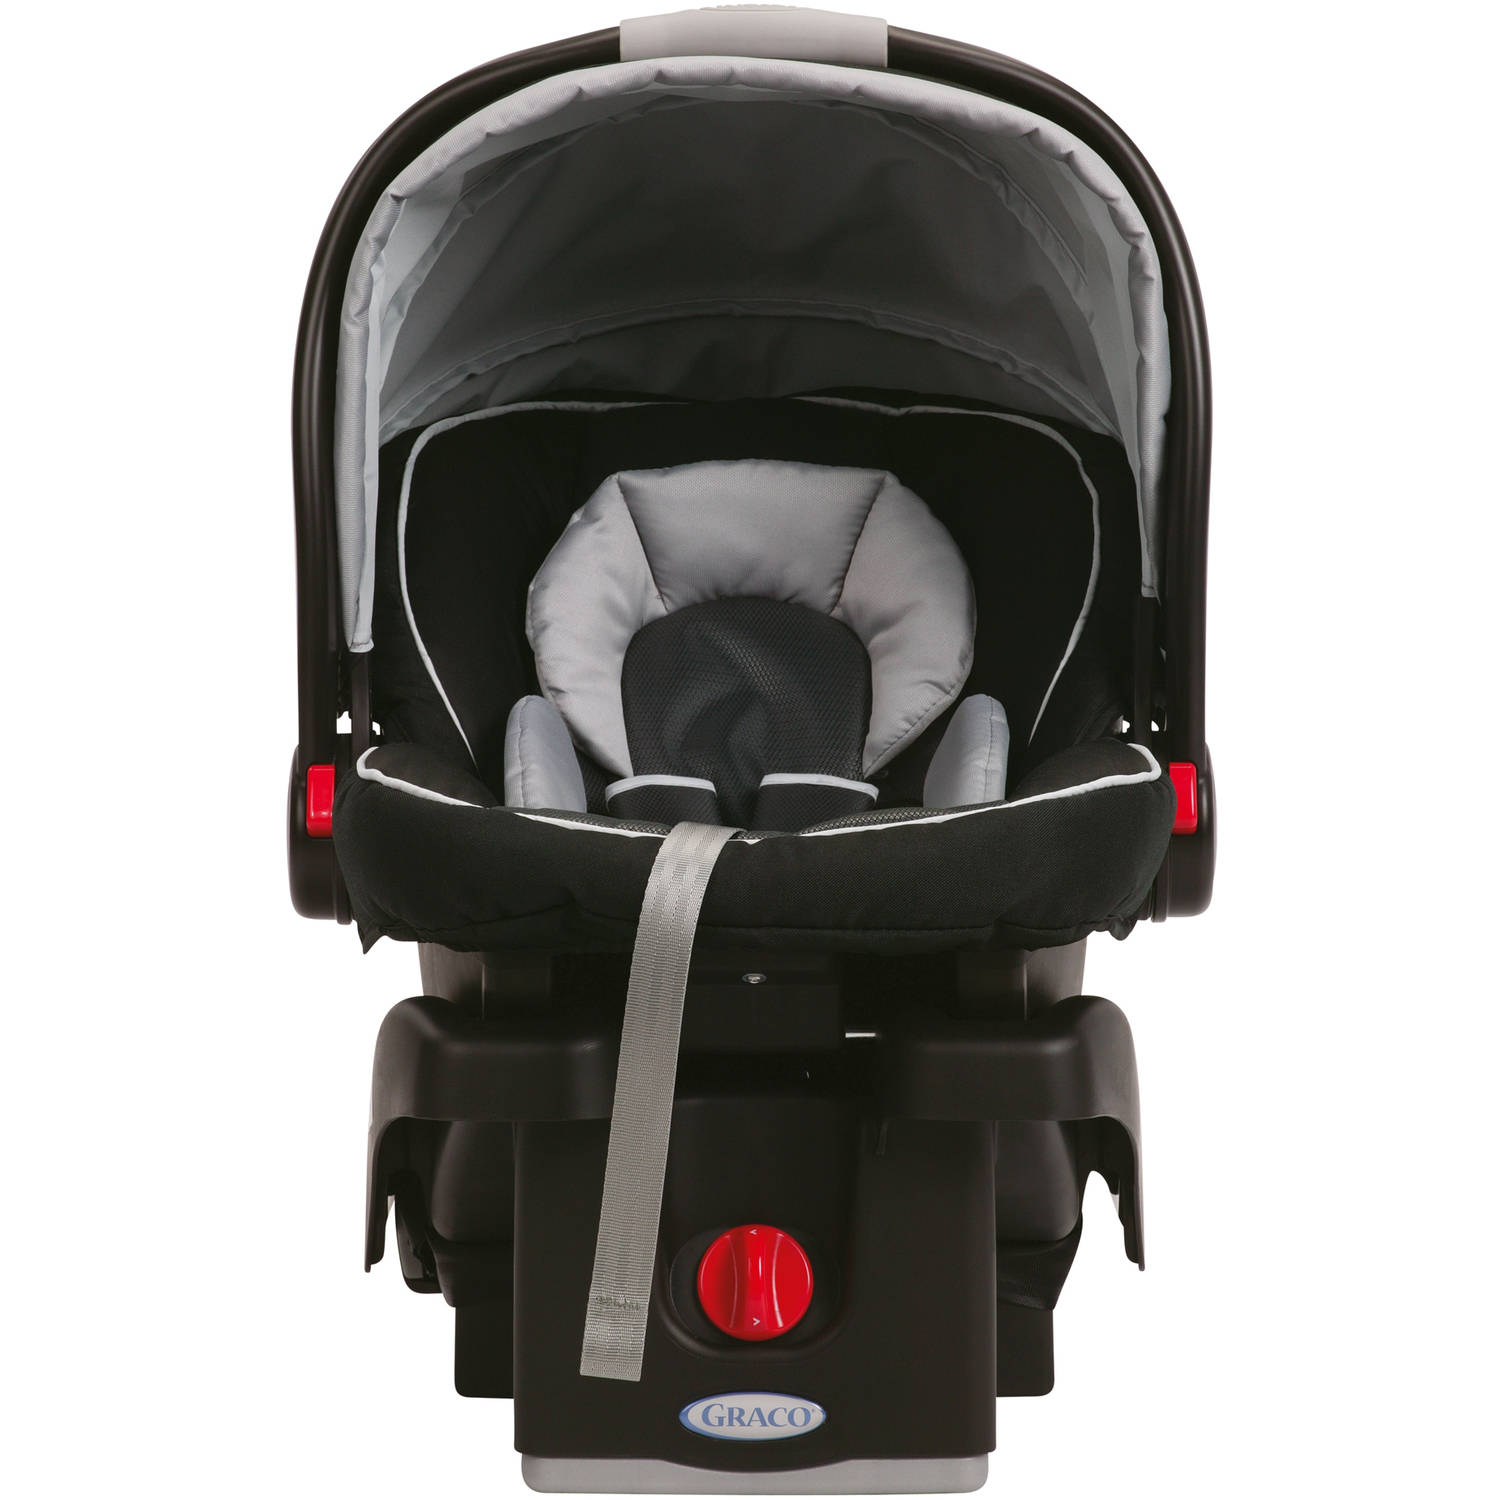 Graco Infant Car Seat Travel Bag